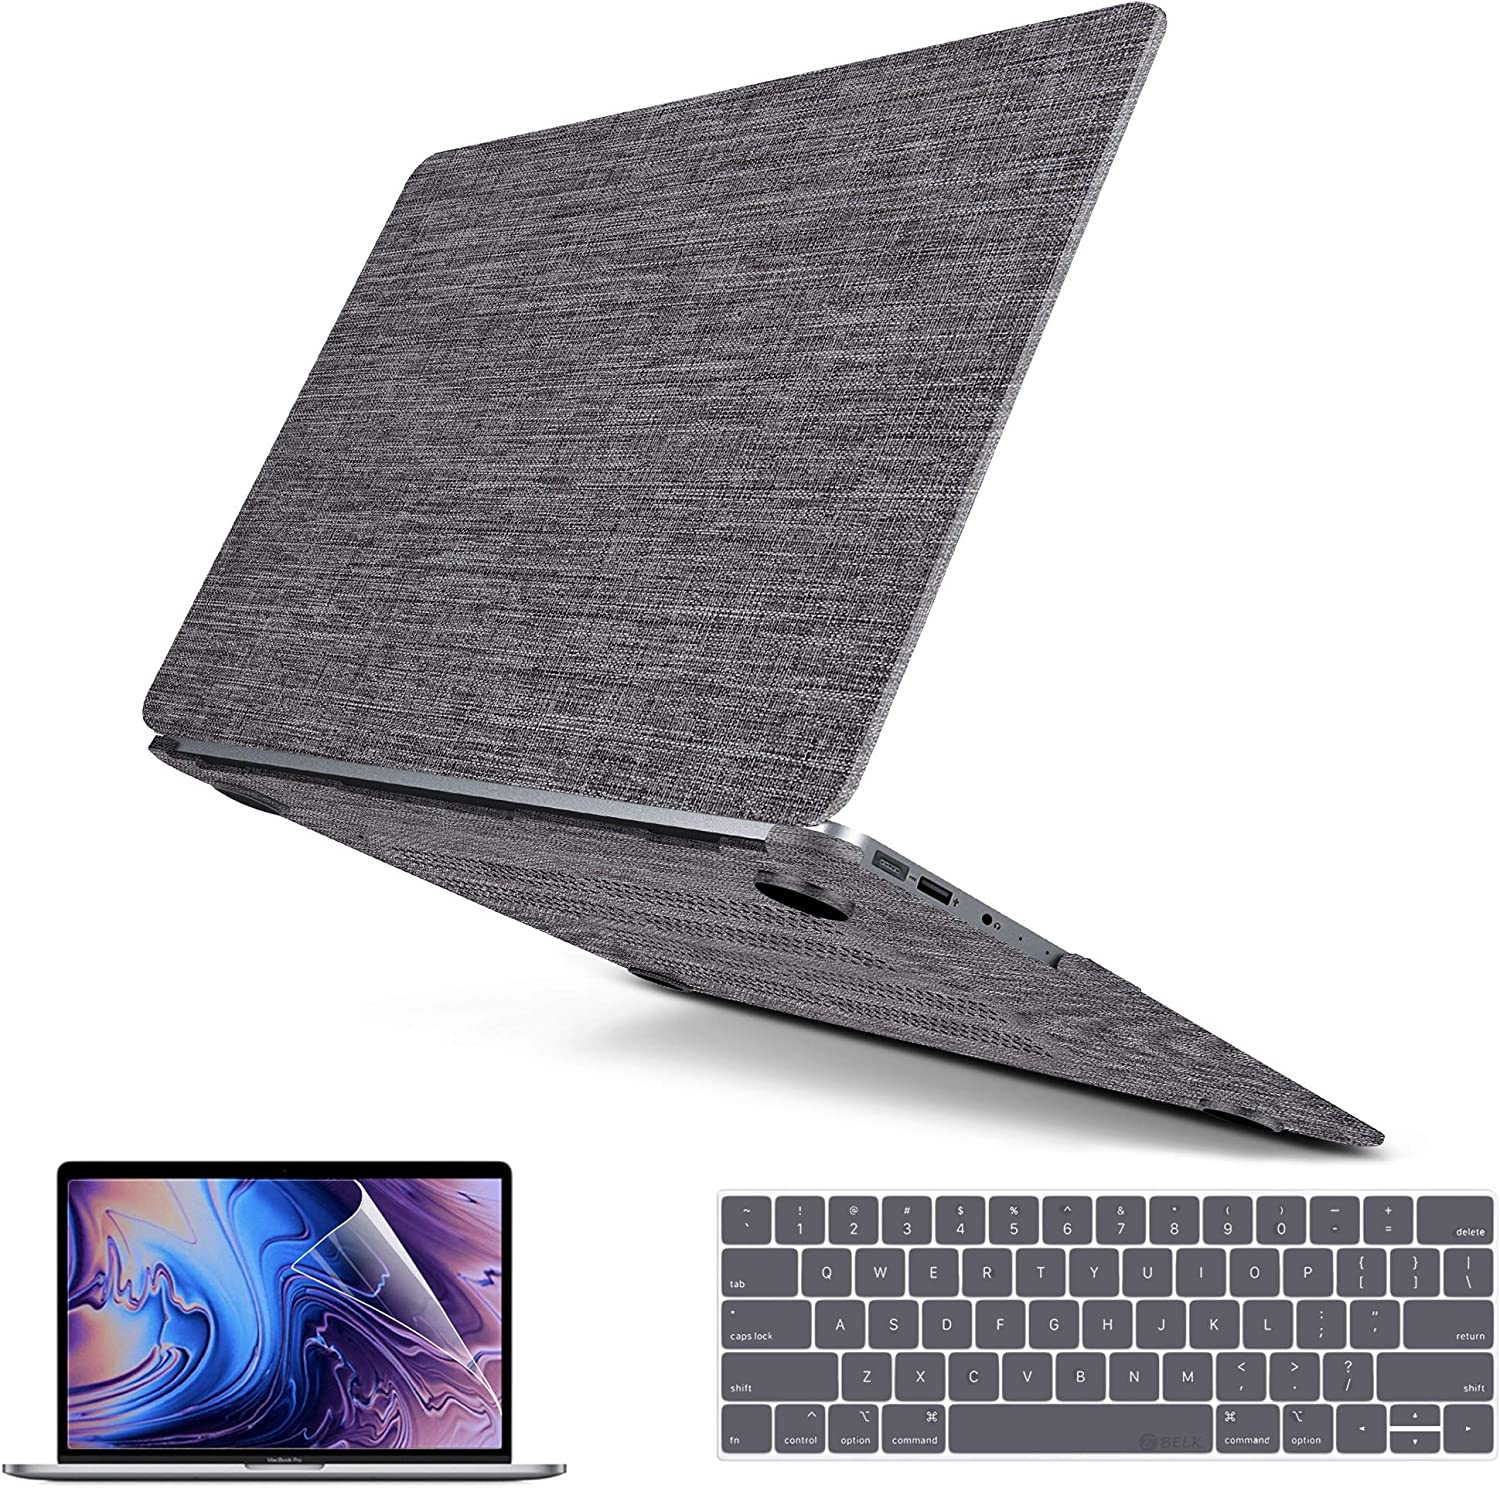 MacBook Pro 16 Inch Case 2019 Release A2141, MacBook Pro 2020 Case Slim Soft Touch Fabric Protective Hard Case Shell Cover with Keyboard Cover & Screen Protector & Touchpad Cover for Apple MacBook 16